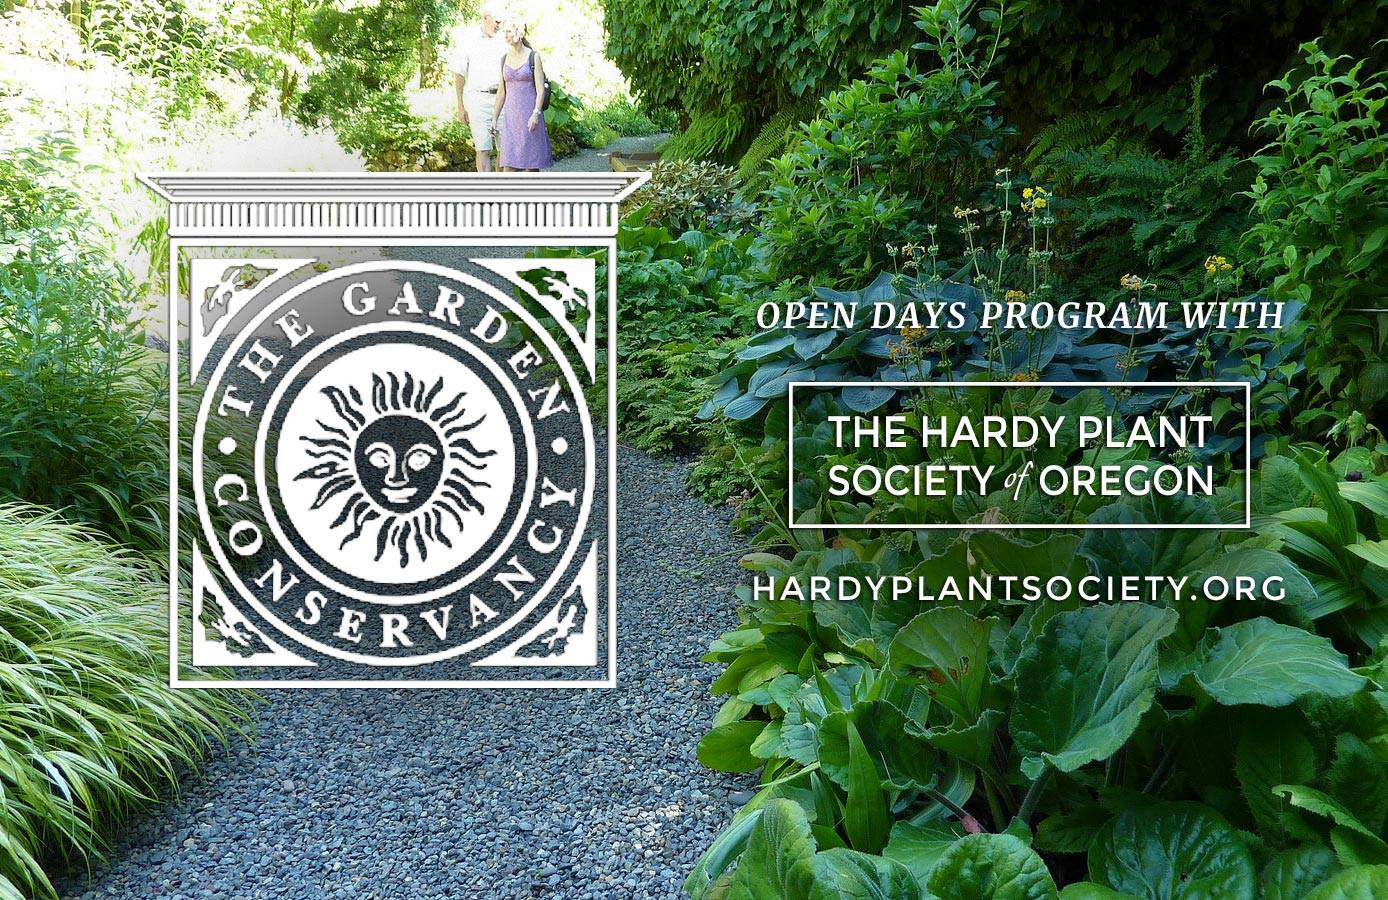 Garden Conservancy & HPSO Open Day Tour